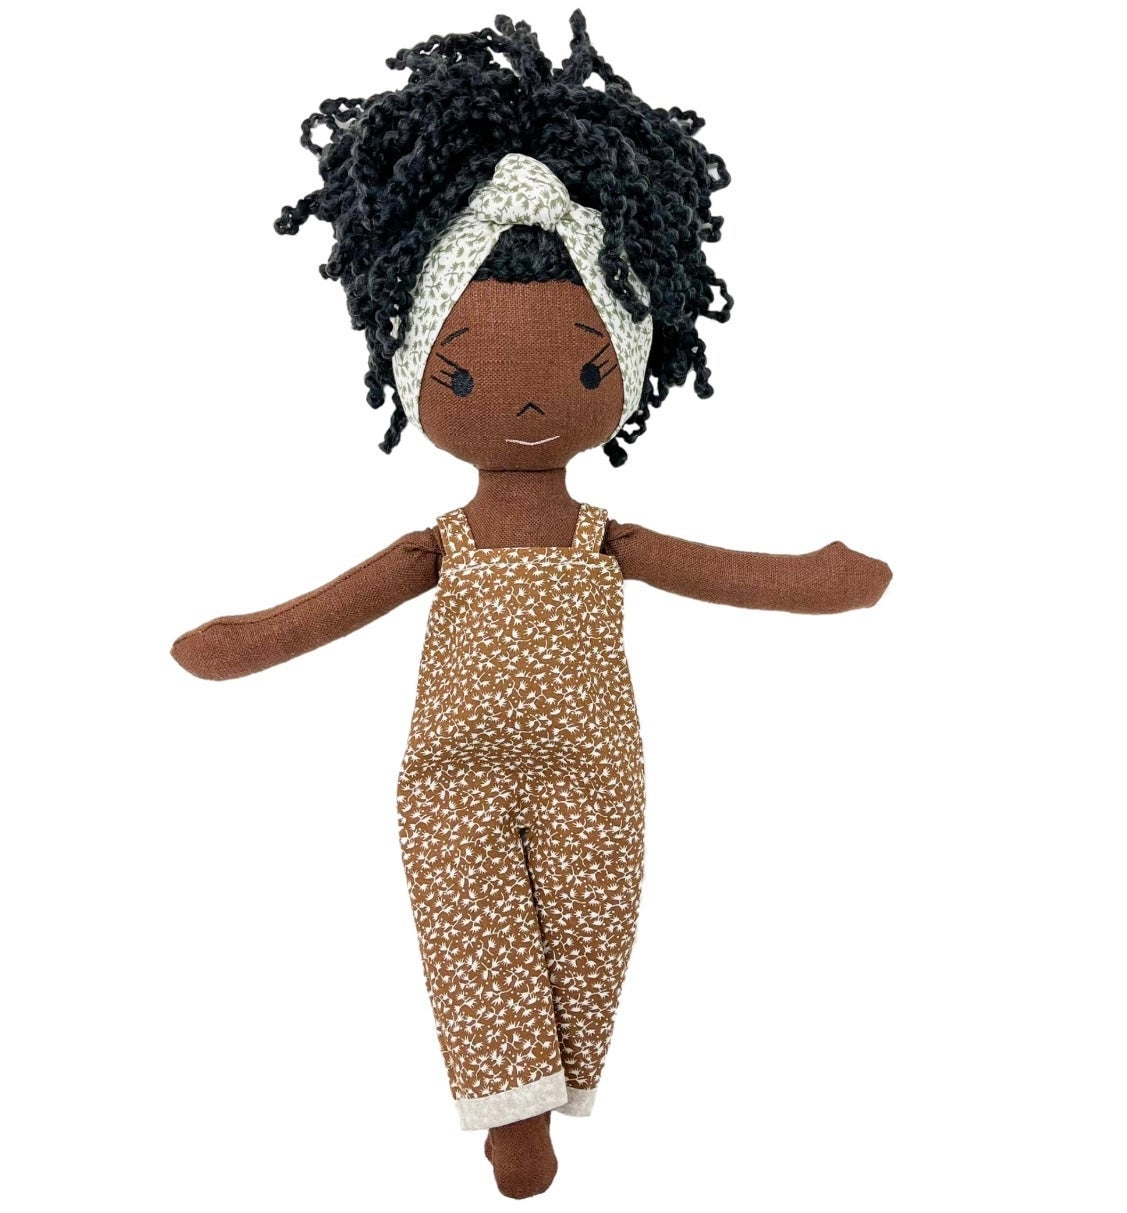 Tiana Handmade Linen Doll (SHIP DATE: ON OR BEFORE MARCH 15TH)